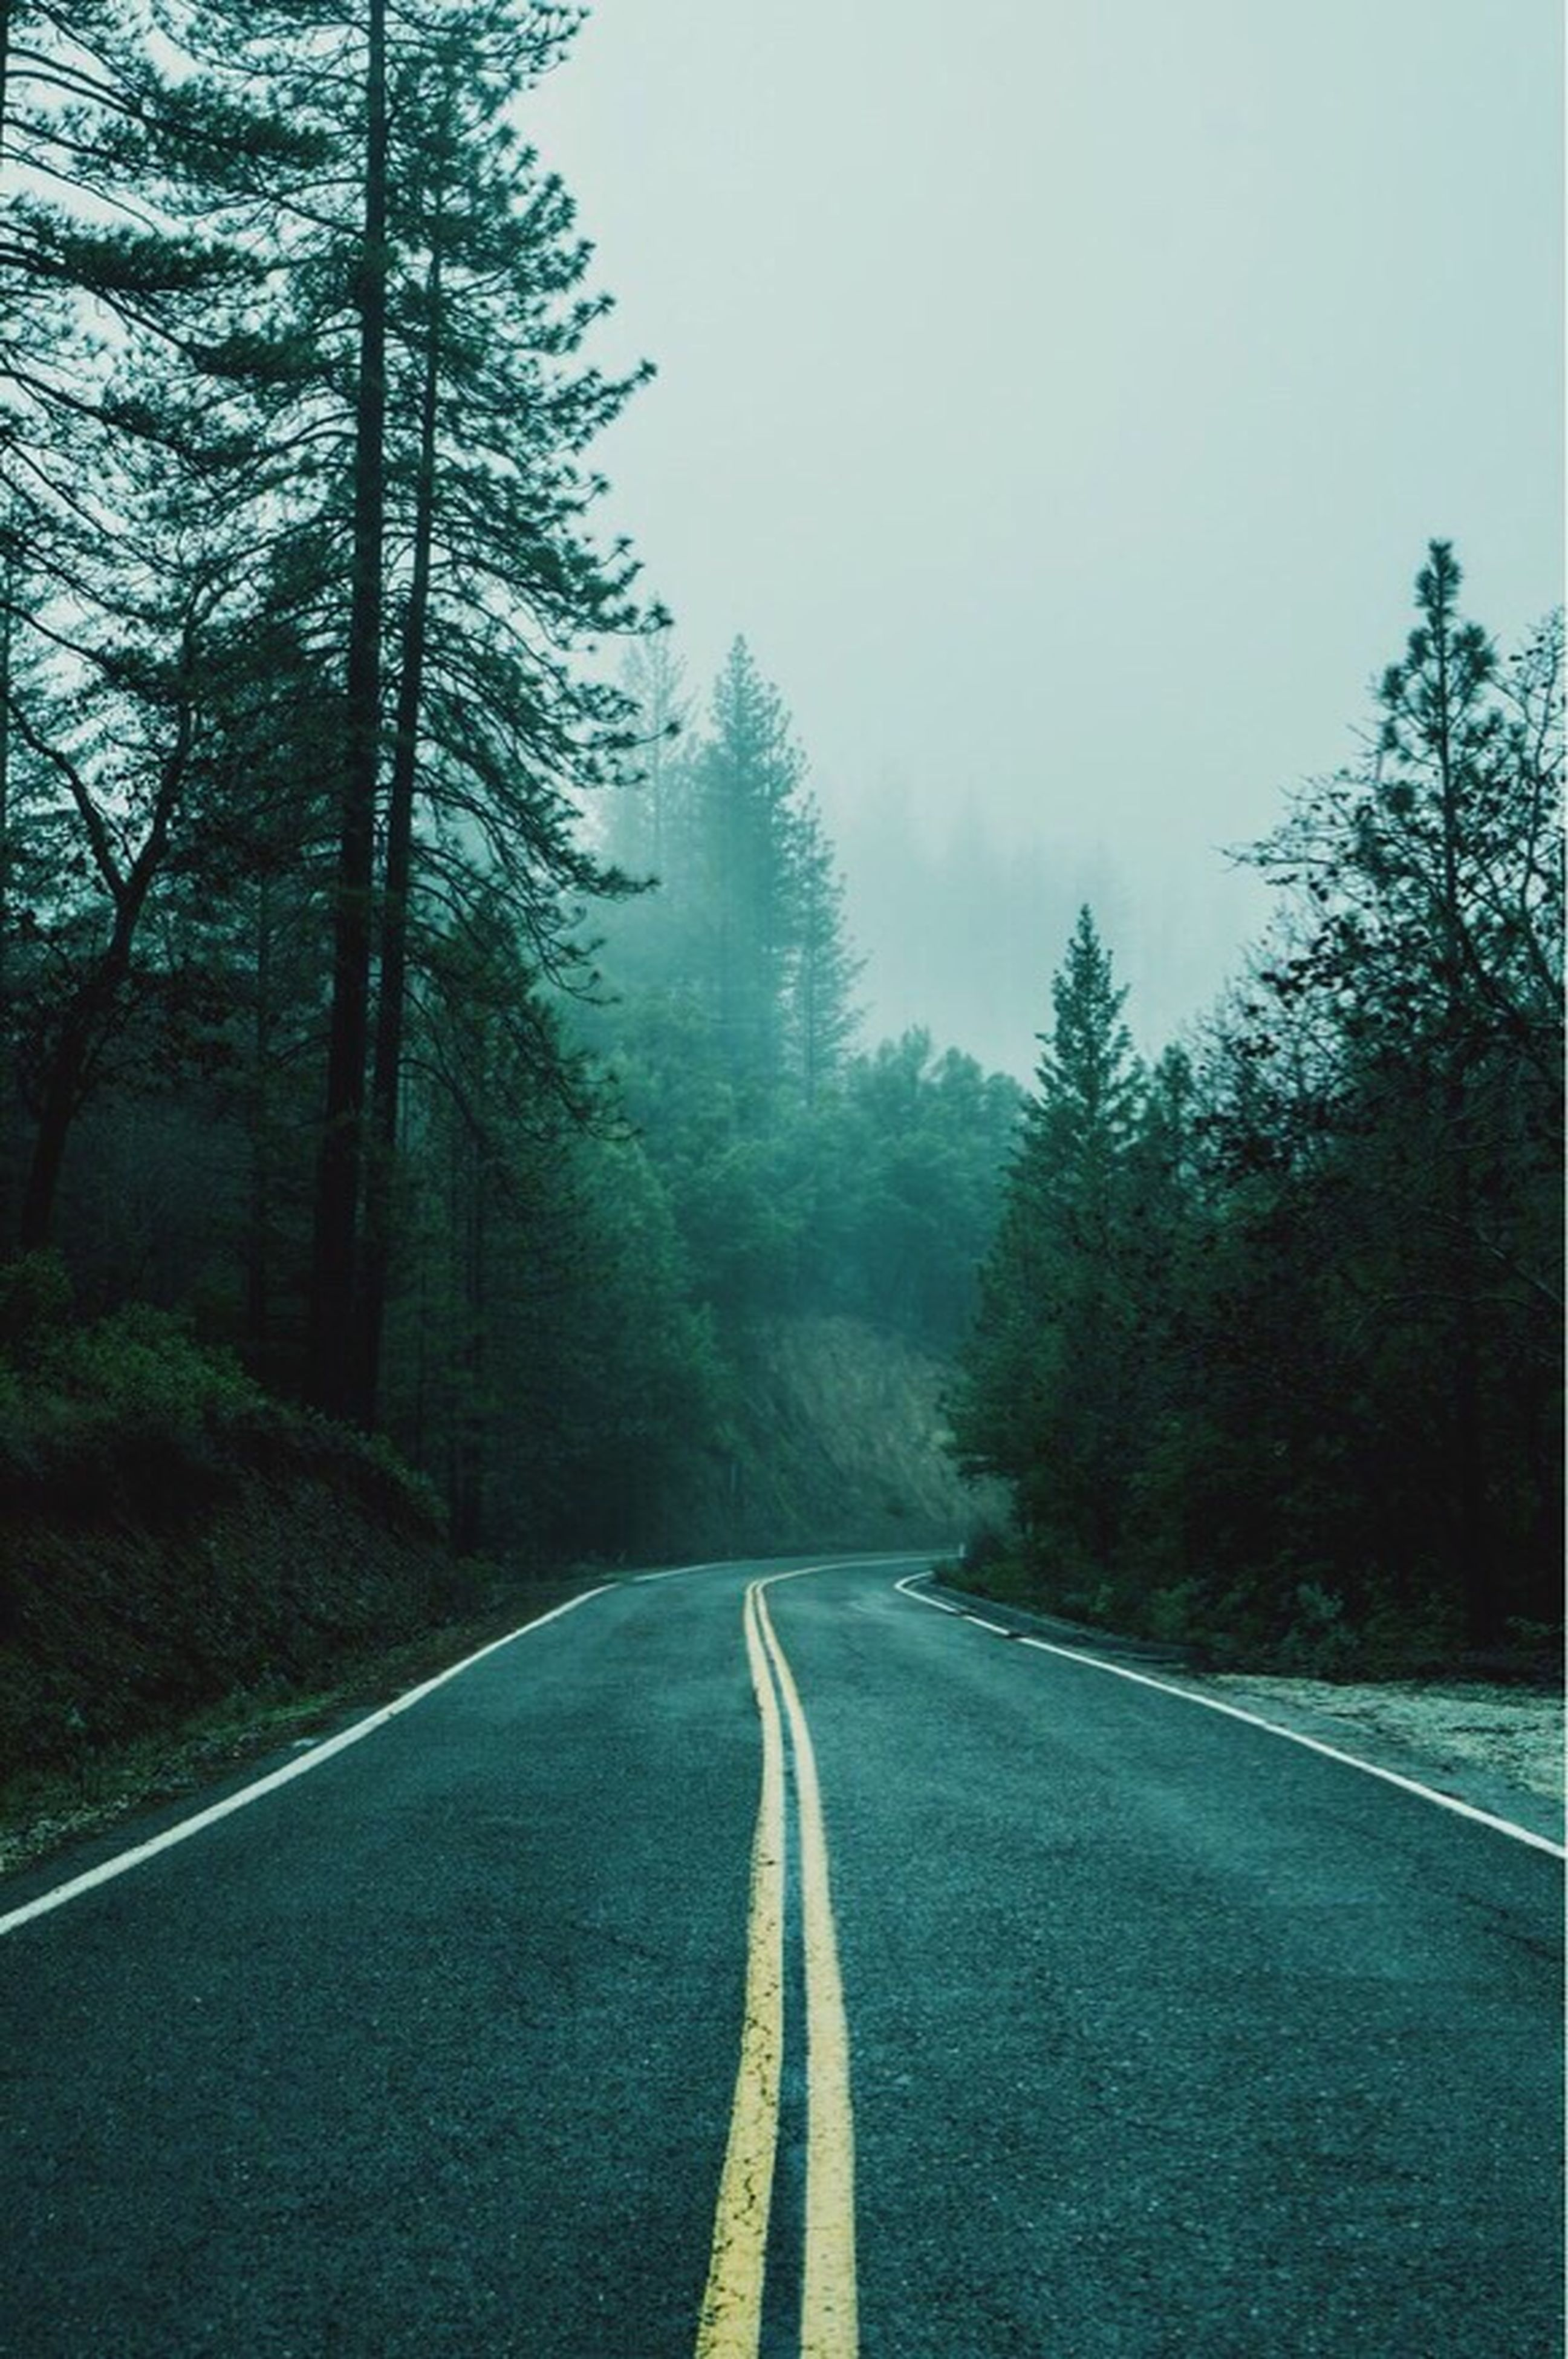 the way forward, tree, road, diminishing perspective, transportation, vanishing point, road marking, empty road, country road, empty, tranquility, sky, asphalt, tranquil scene, long, nature, street, bare tree, outdoors, no people